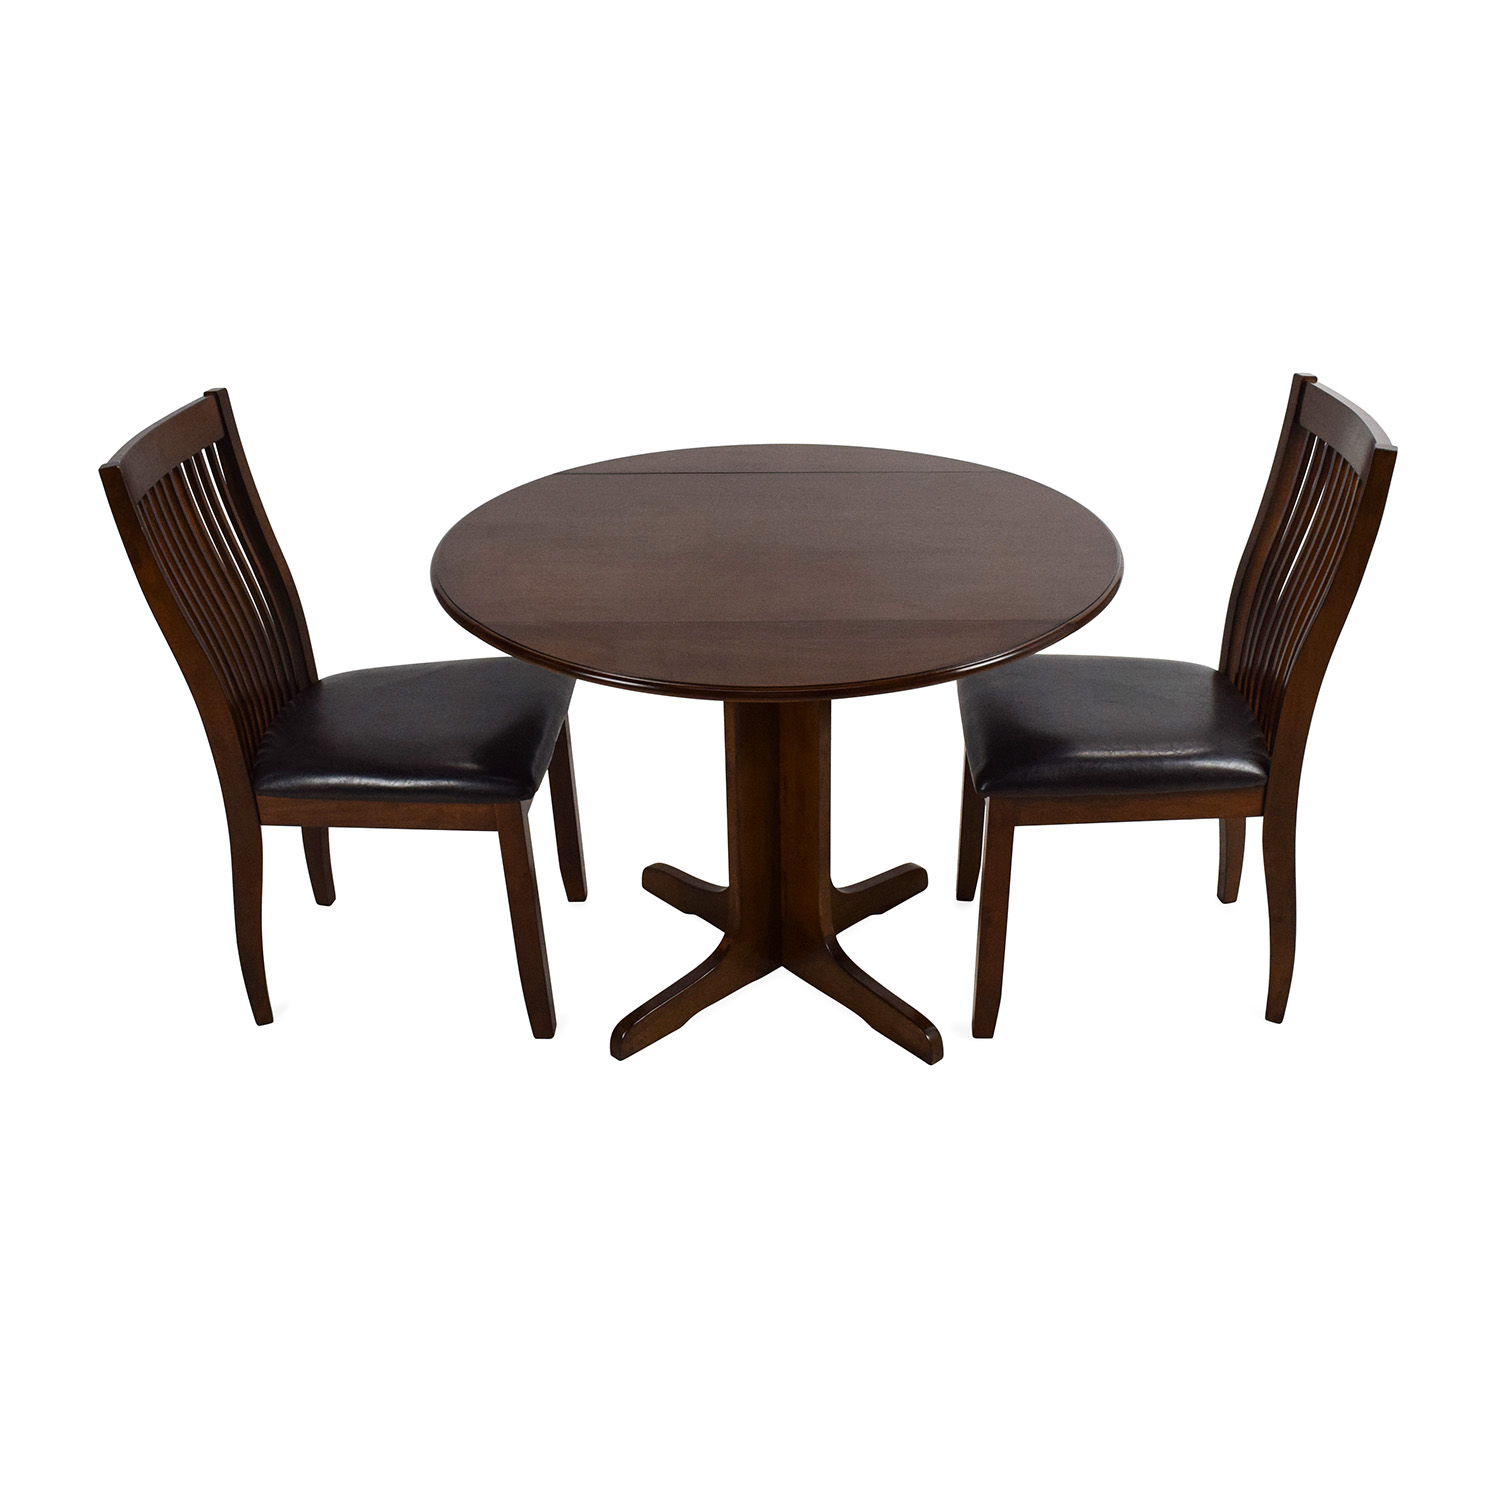 Excellent 71 Off Ashley Furniture Ashley Furniture Compact Dining Set Tables Interior Design Ideas Inesswwsoteloinfo